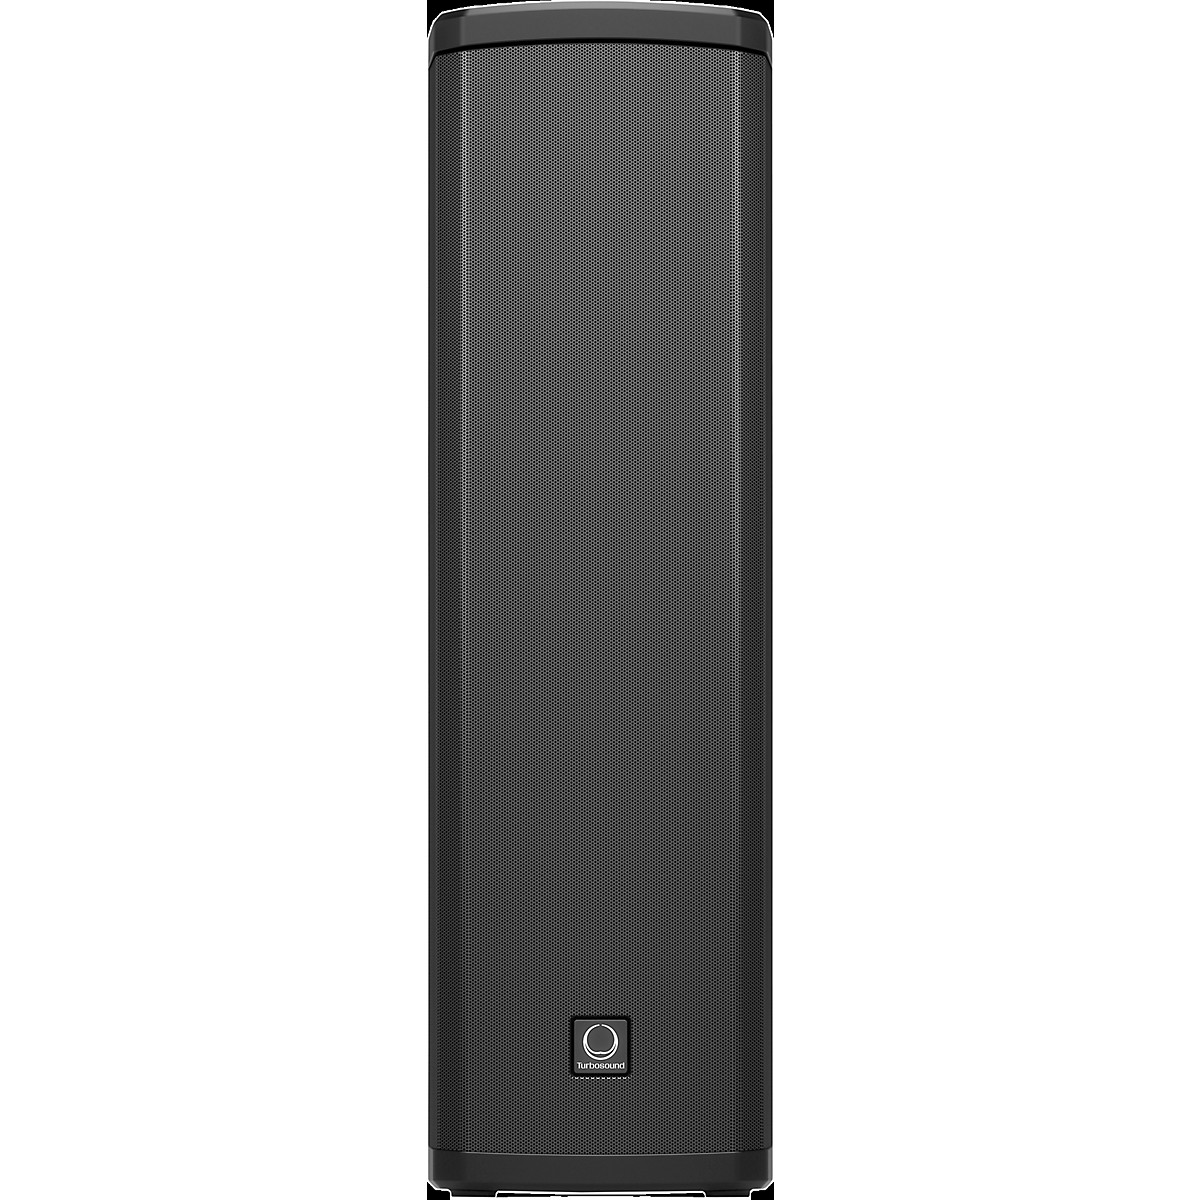 Turbosound iNSPIRE iP300 Personal Line Array Column-Style PA Active Loudspeaker System with Bluetooth